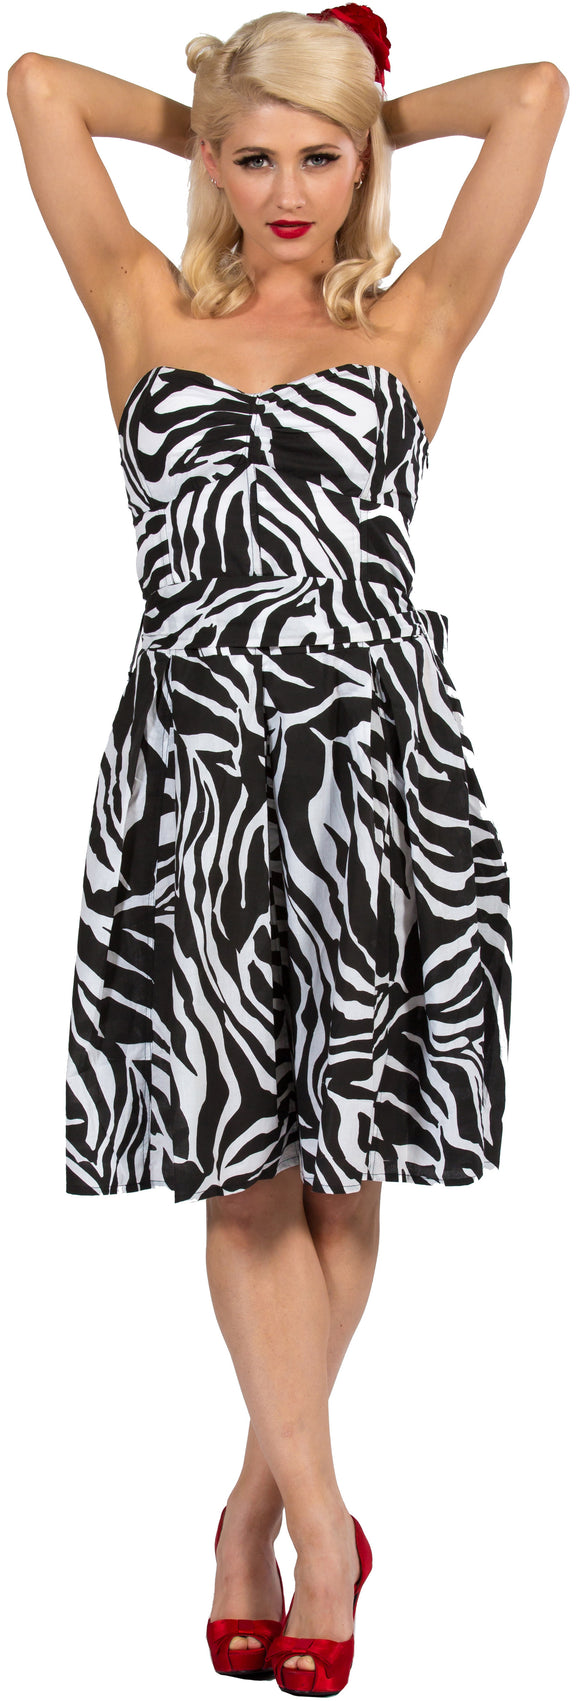 Dead Threads - Women's Black and White Zebra Sexy Dress